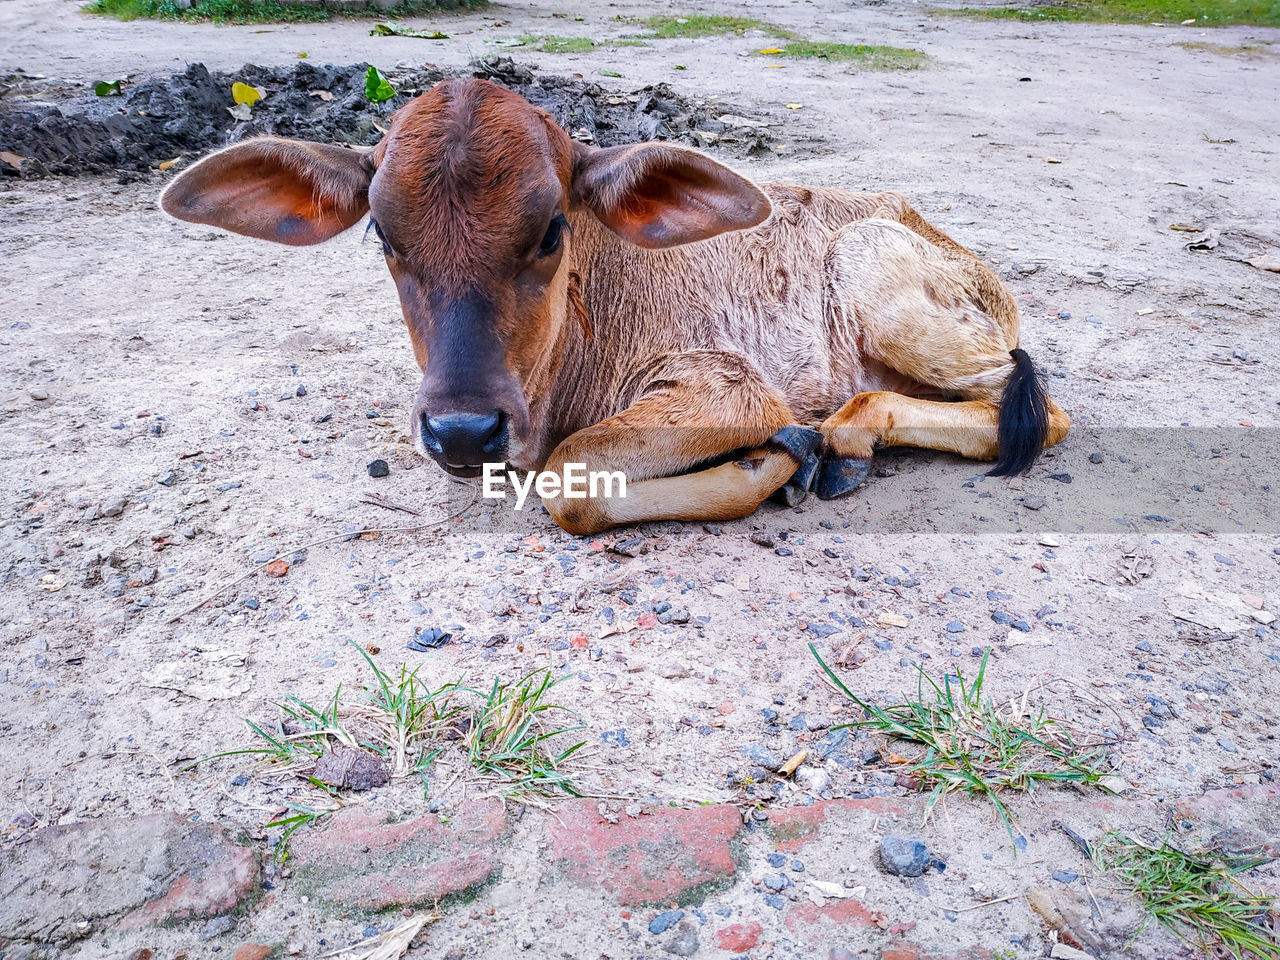 mammal, animal, animal themes, domestic, livestock, domestic animals, pets, vertebrate, group of animals, day, no people, land, nature, high angle view, field, brown, two animals, animal wildlife, relaxation, herbivorous, outdoors, animal head